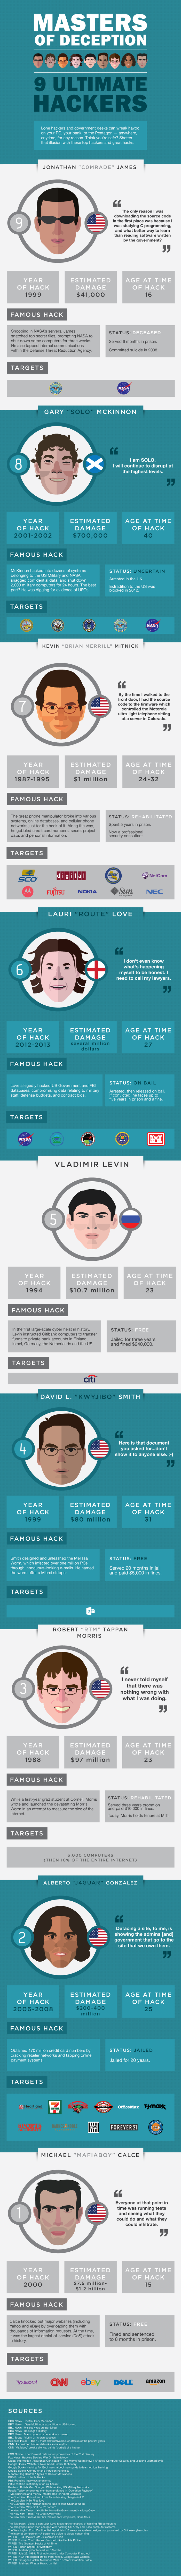 Masters of Deception: 9 Ultimate Hackers